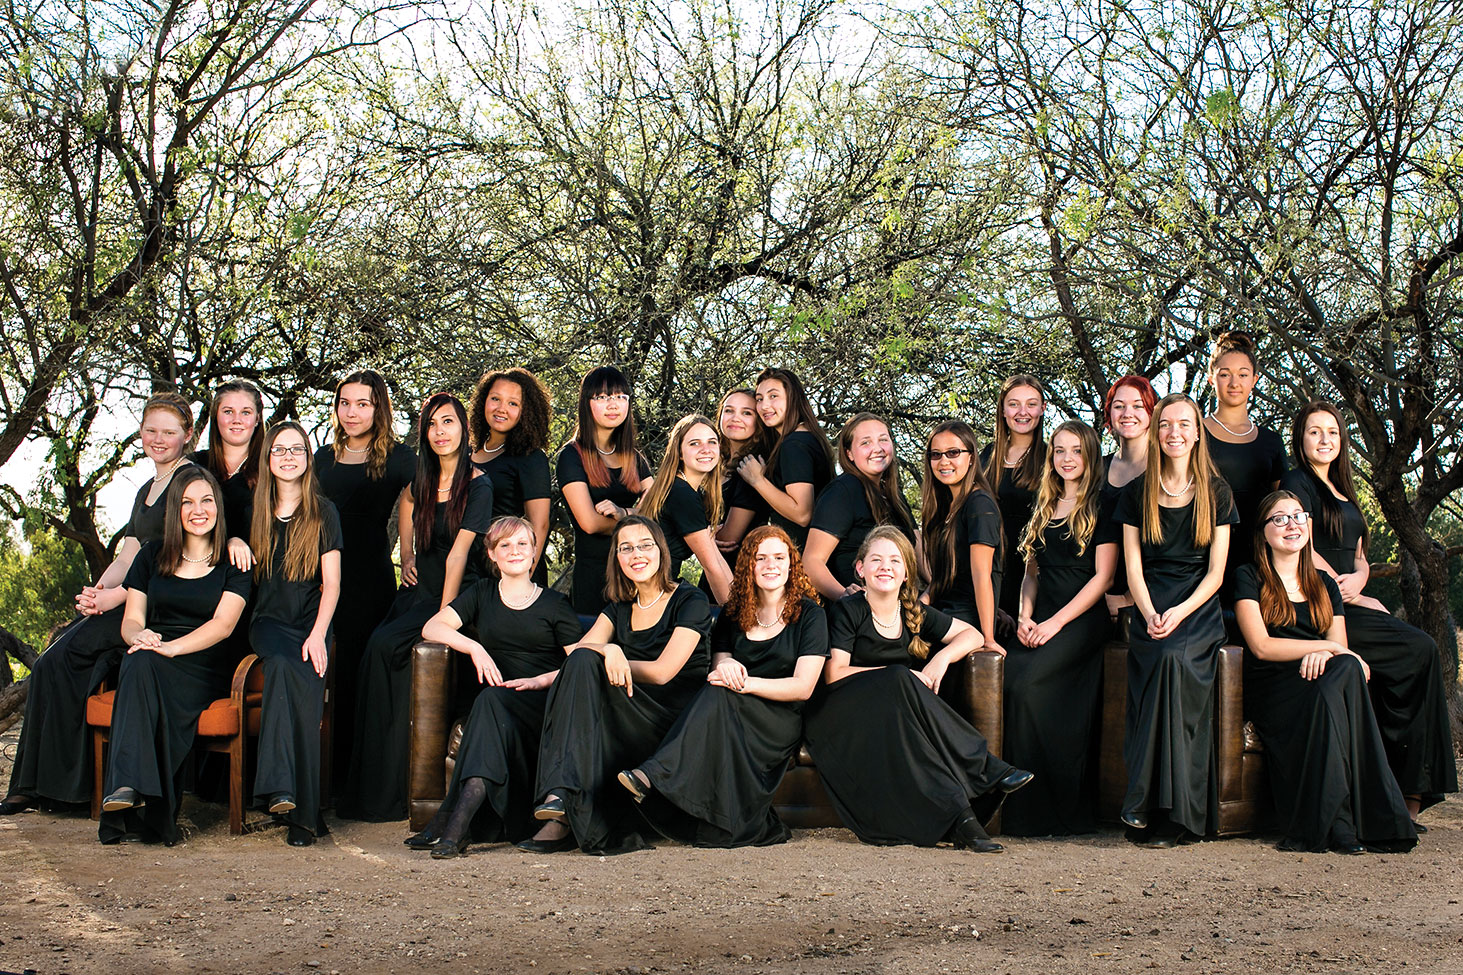 Used with permission of the Tucson Girls Chorus.